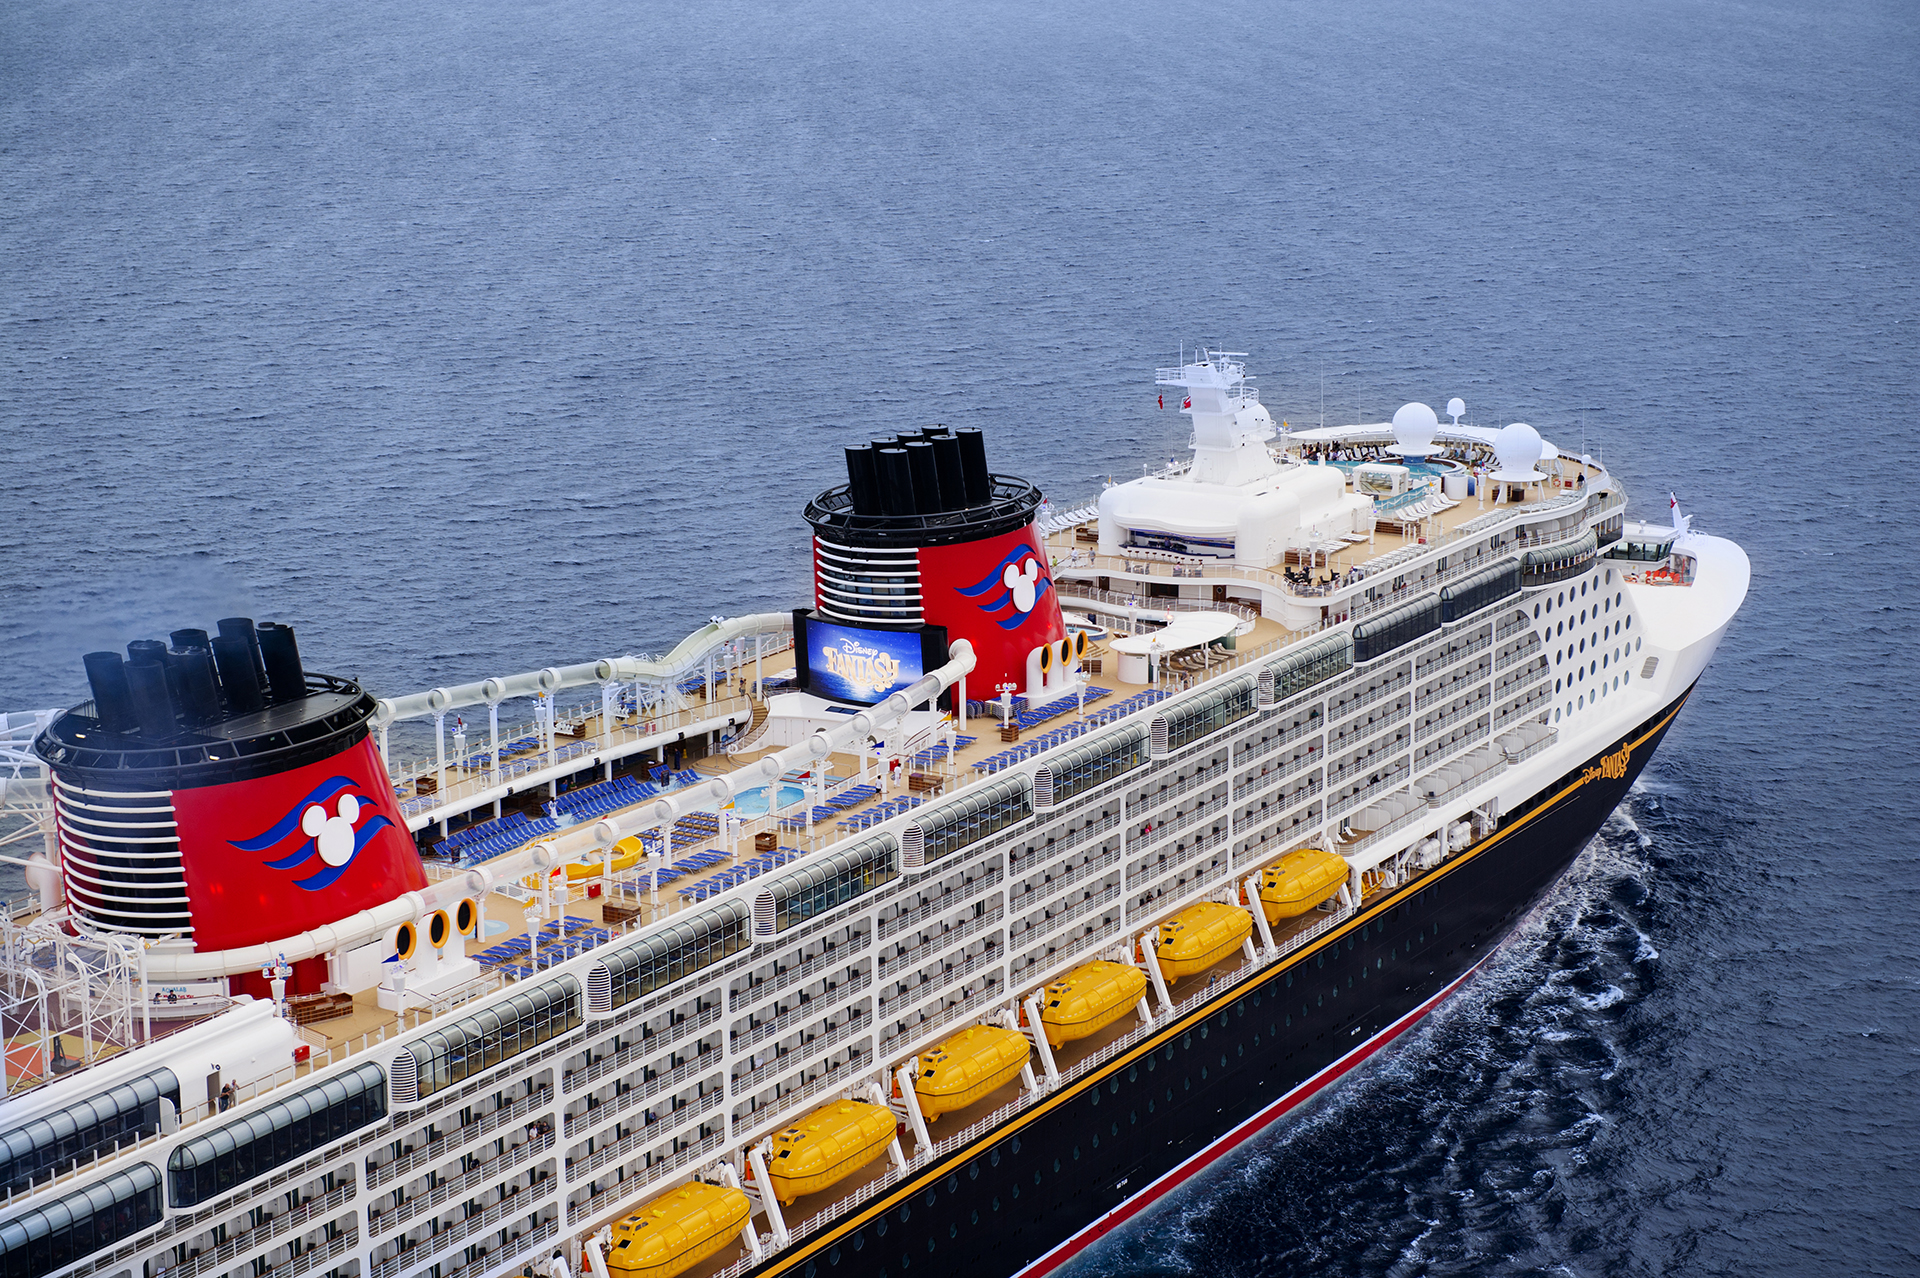 *cruise ship from above